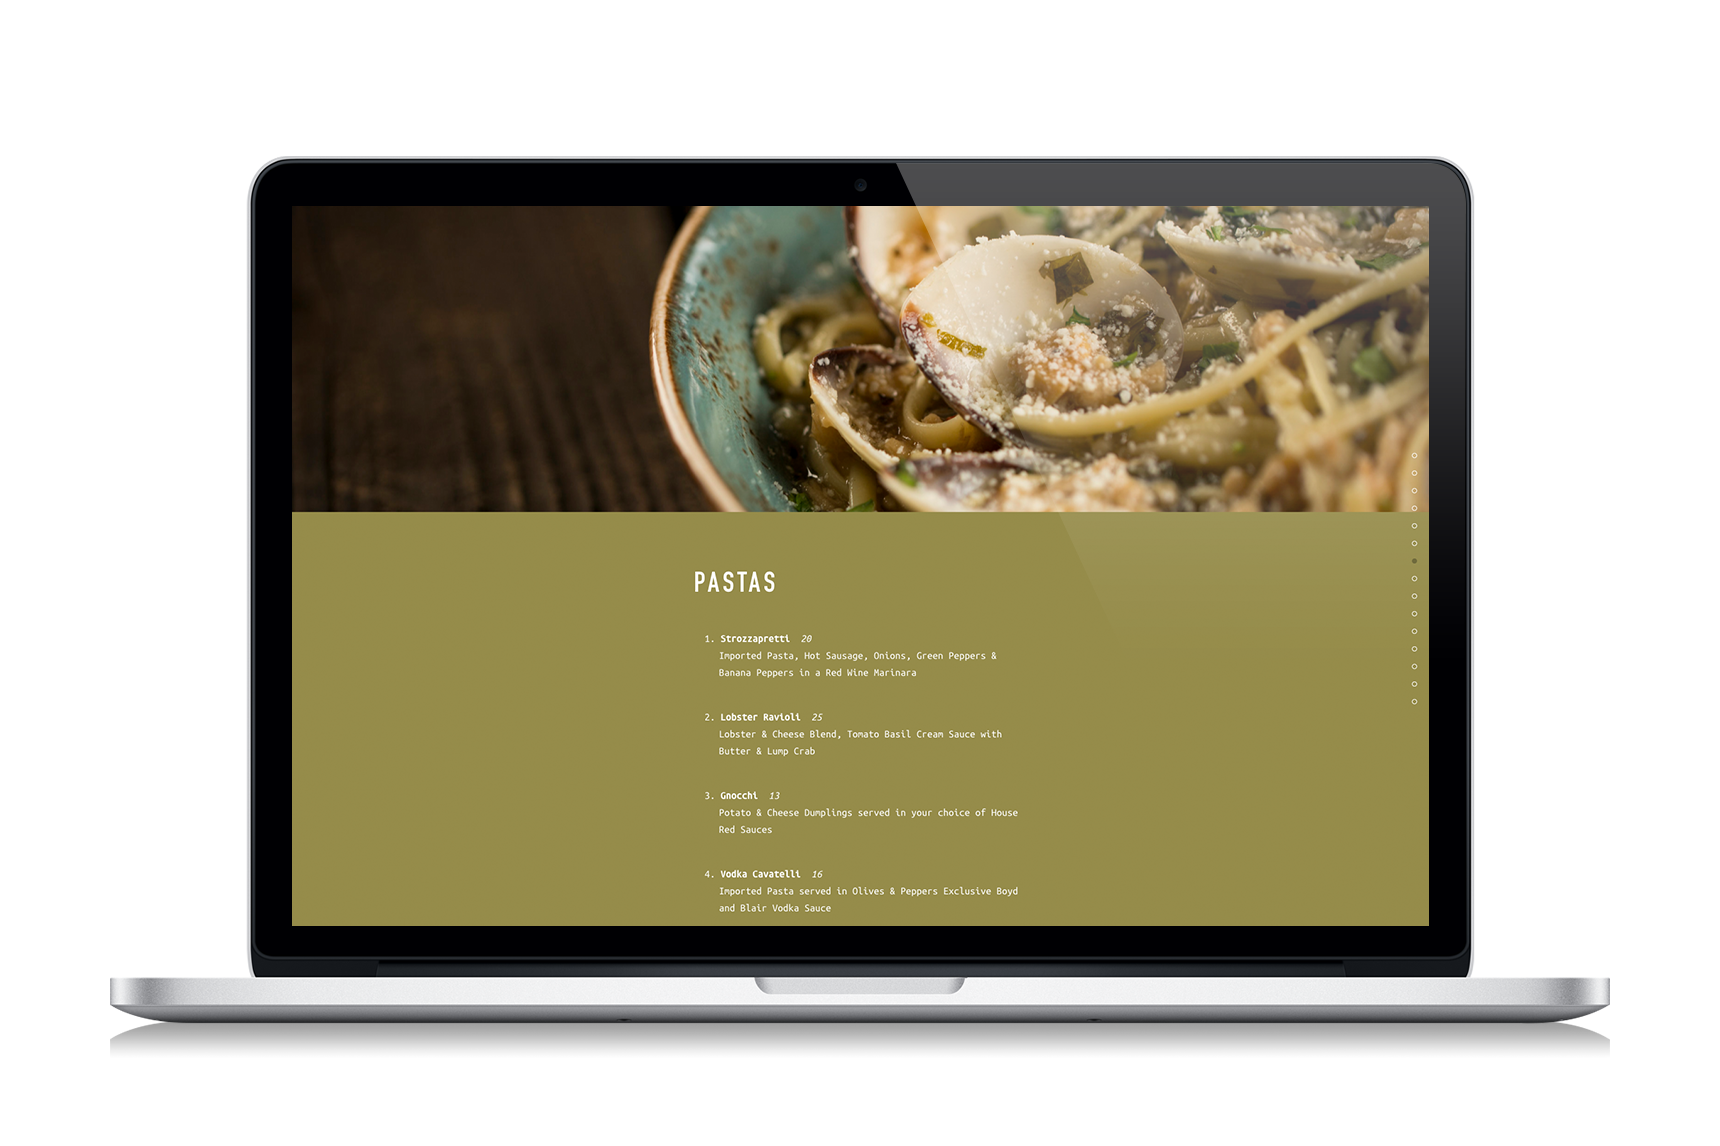 Restaurant_website_olives and peppers_bootstrap desgin co_2.png